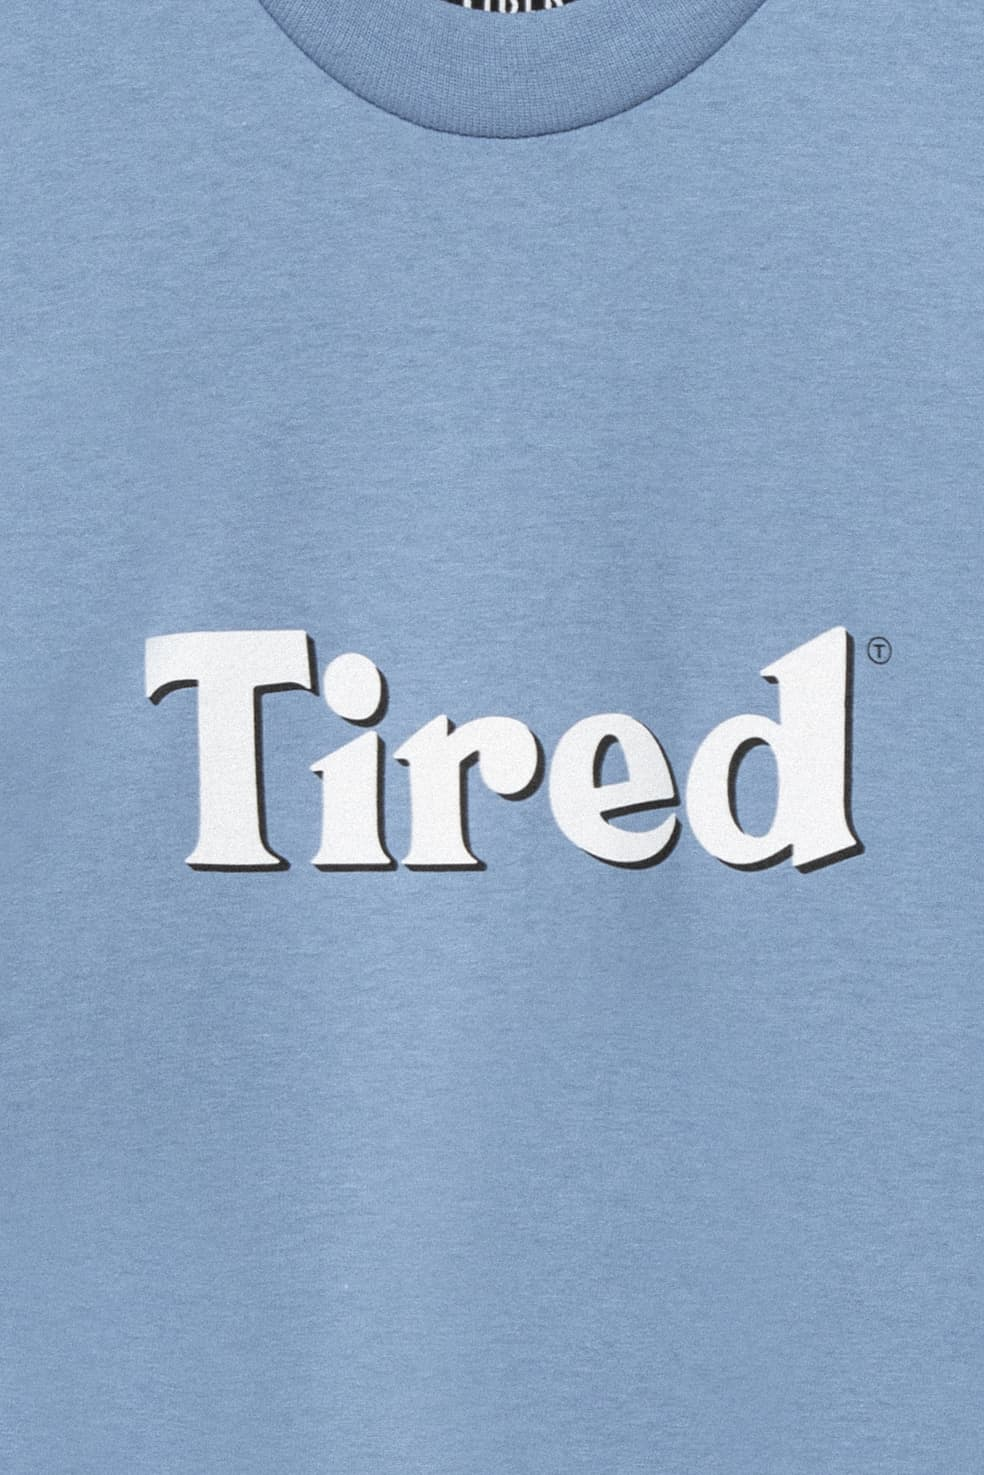 Tired Bloody Tired T-Shirt - Dusty Blue | T-Shirt by Tired Skateboards 3